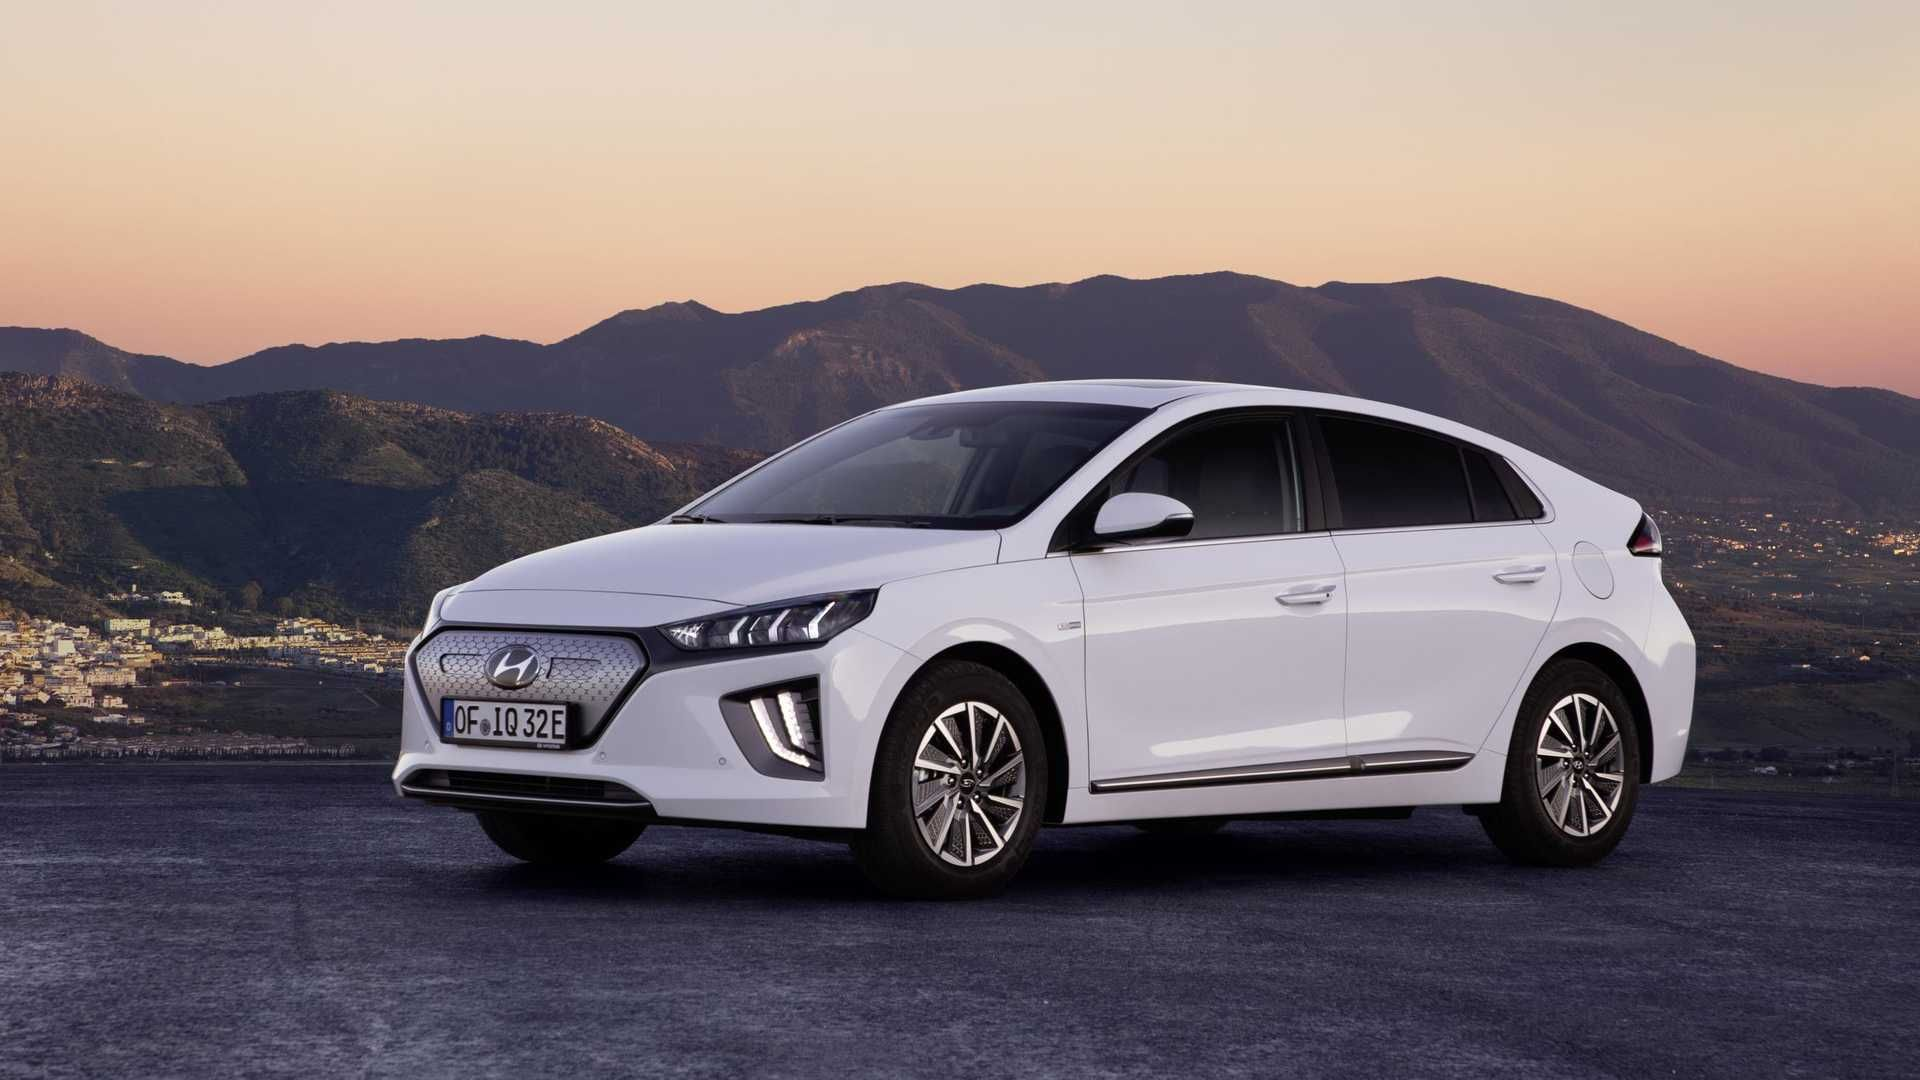 Everything We Know New Hyundai Ioniq Electric Including Price June 2019 184m Range In 2020 New Hyundai Hyundai Electricity